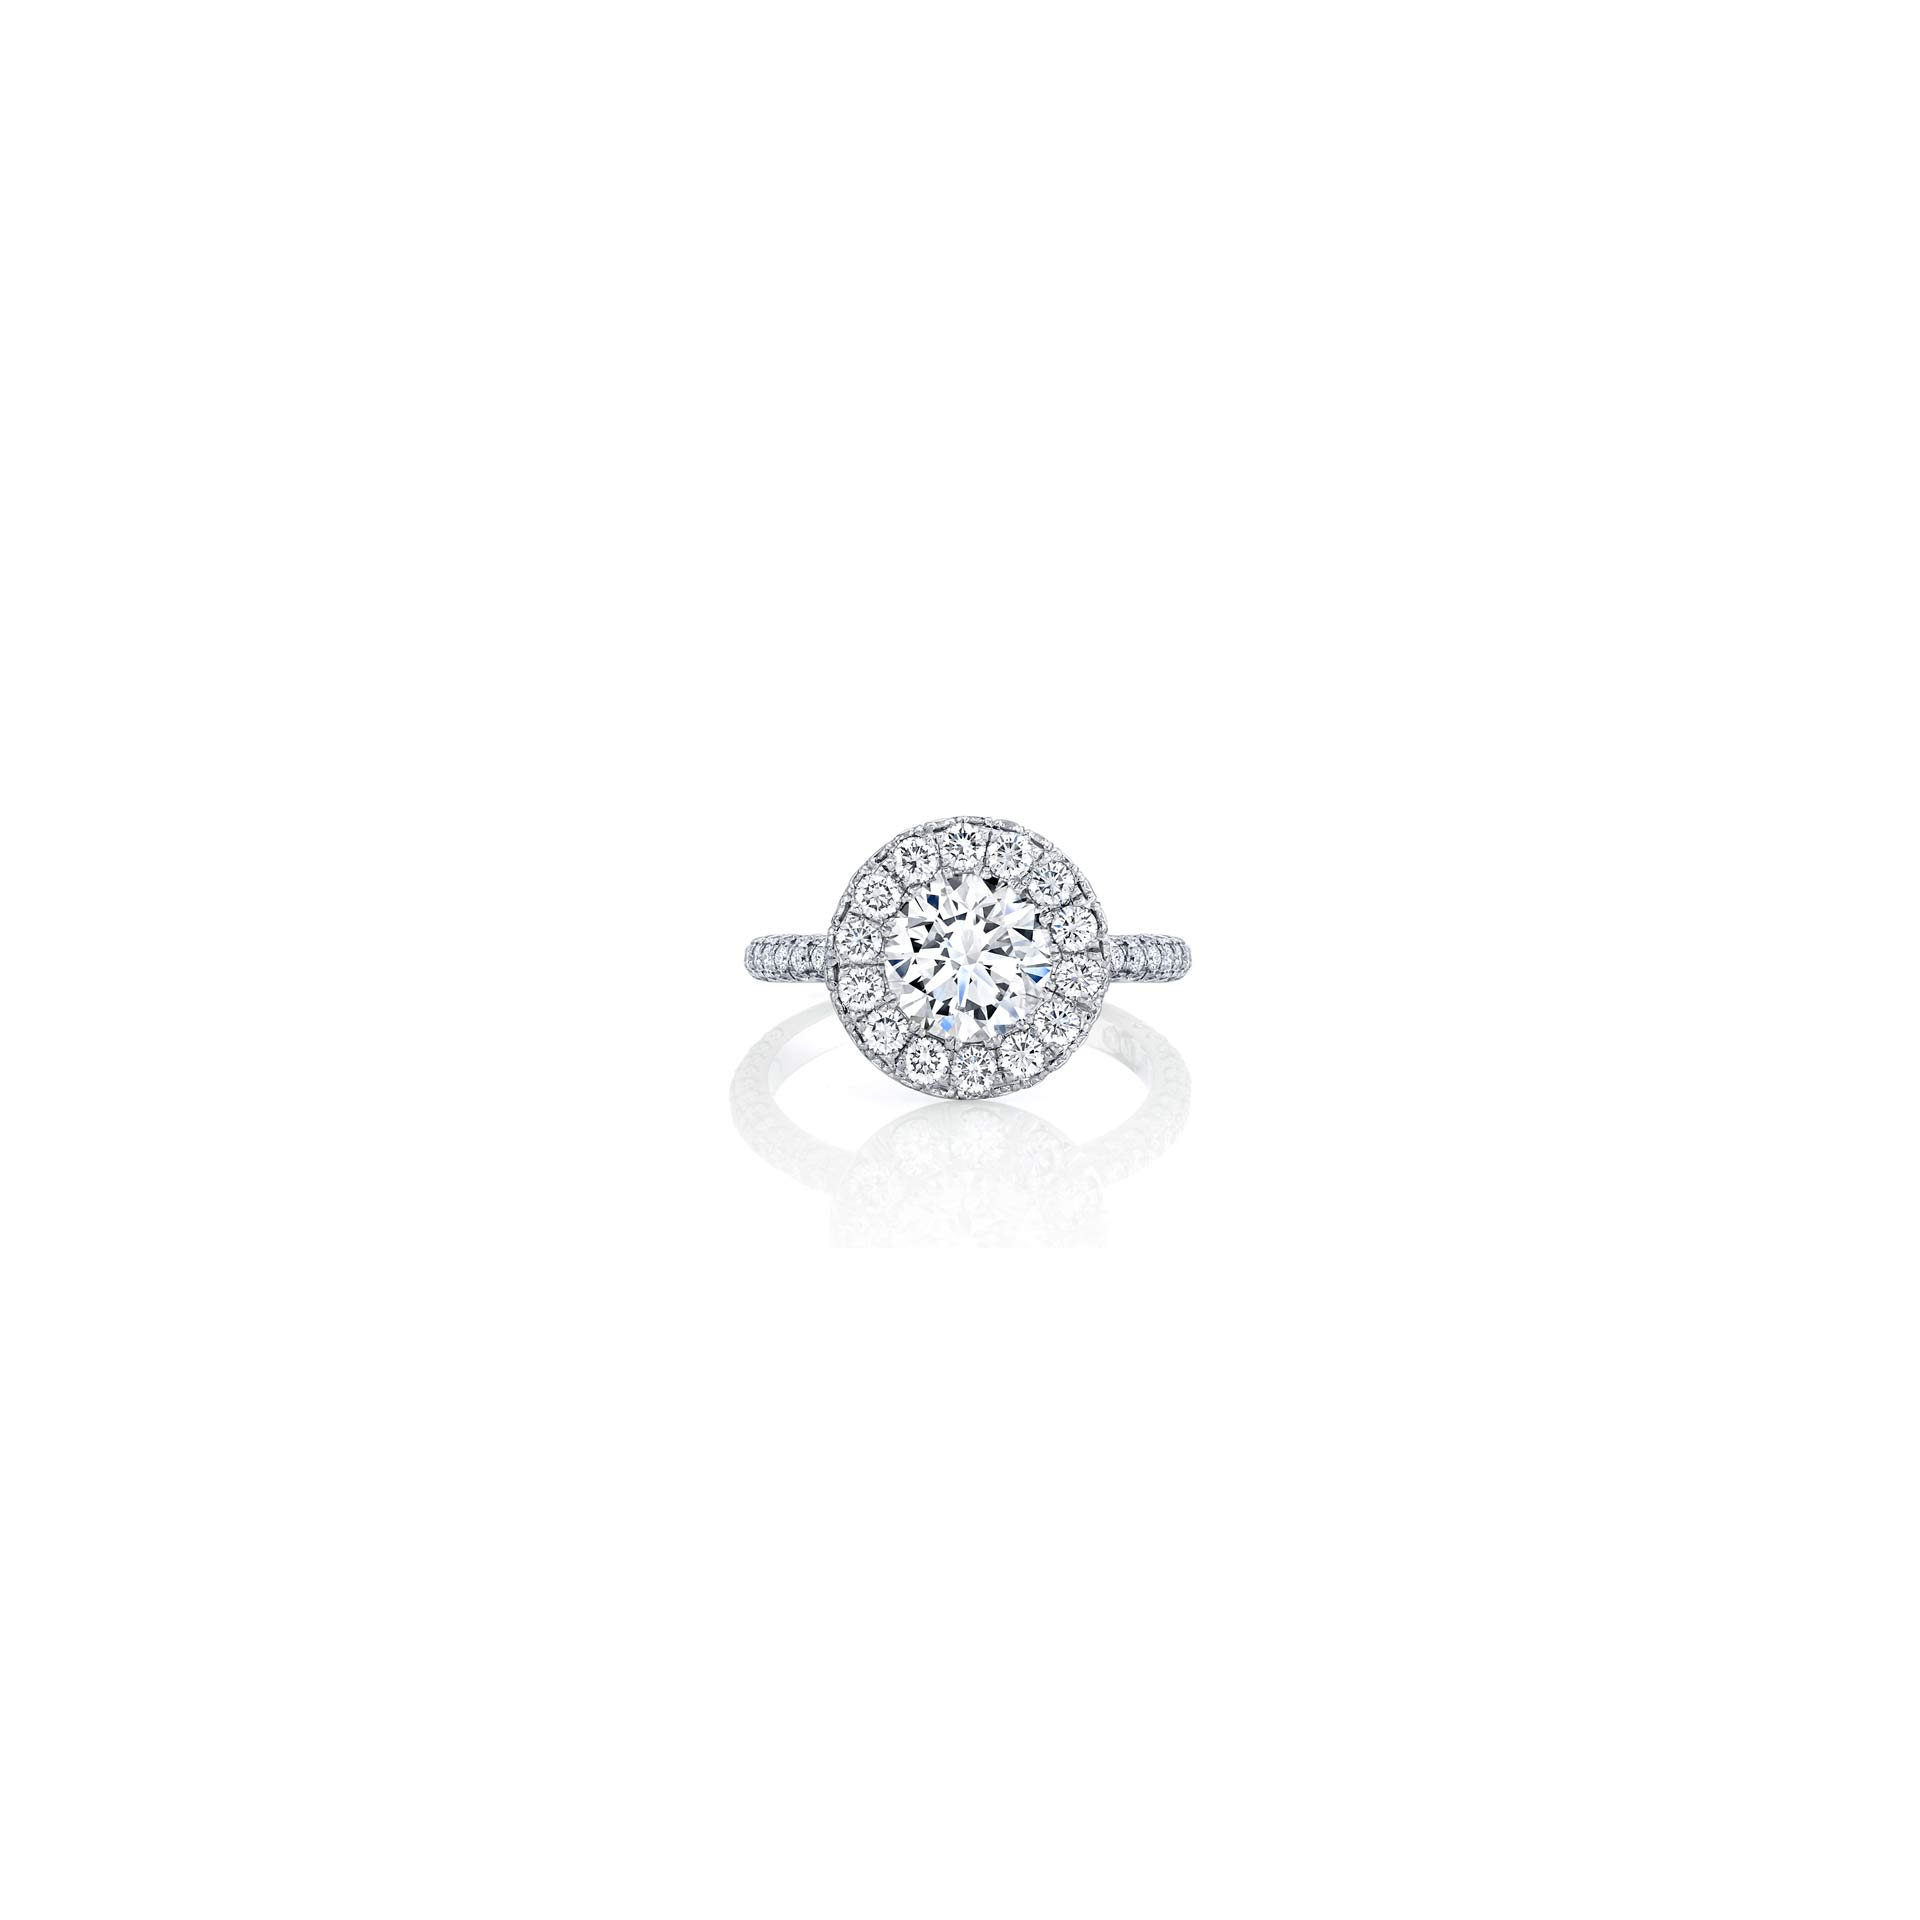 Jacqueline Round Brilliant Seamless Halo® Engagement Ring with diamond pavé in 18k White Gold Front View by Oui by Jean Dousset